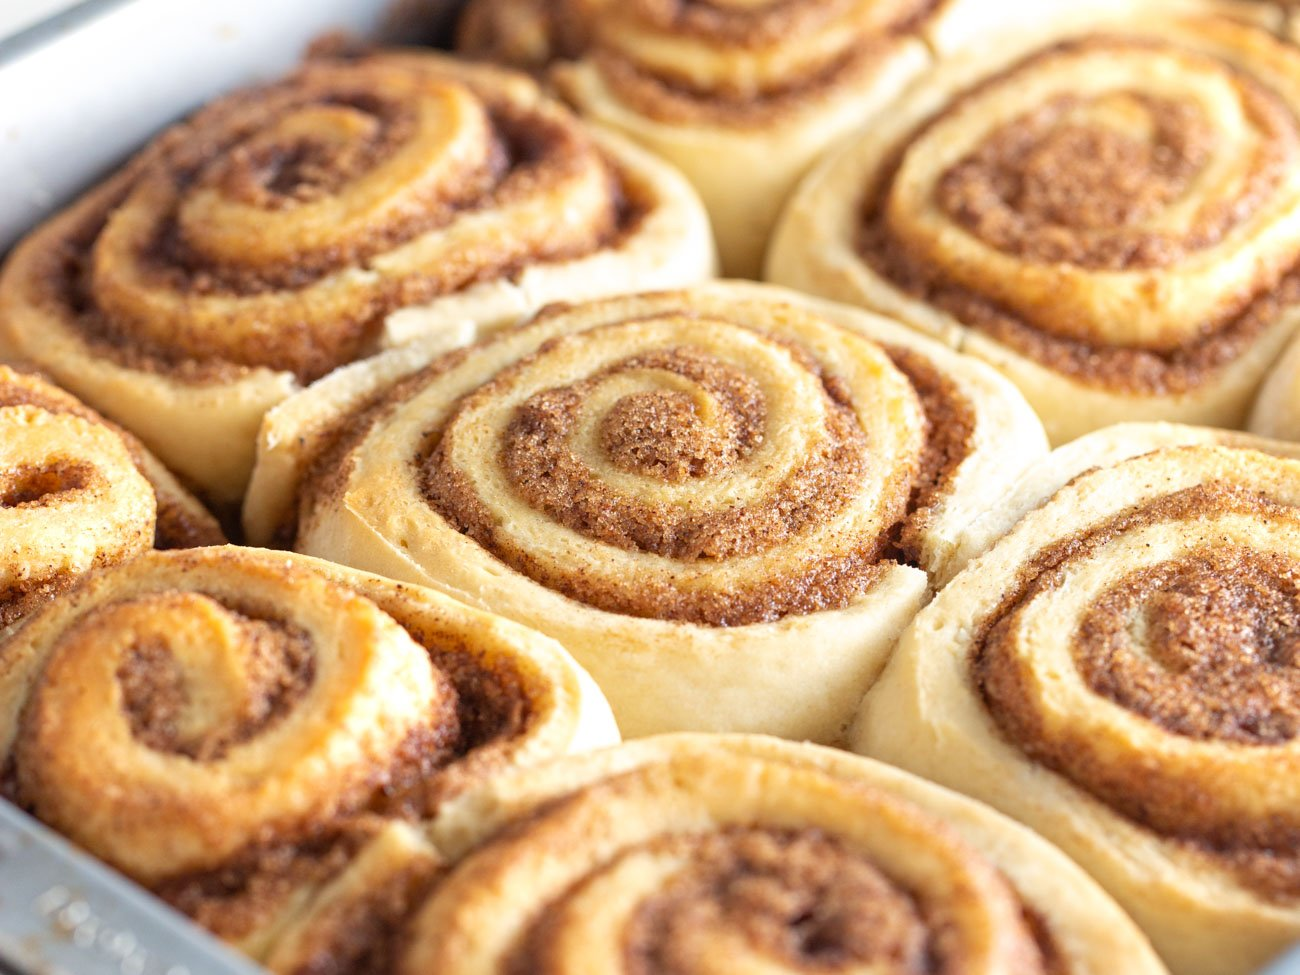 Pan of baked golden 1 hour cinnamon rolls